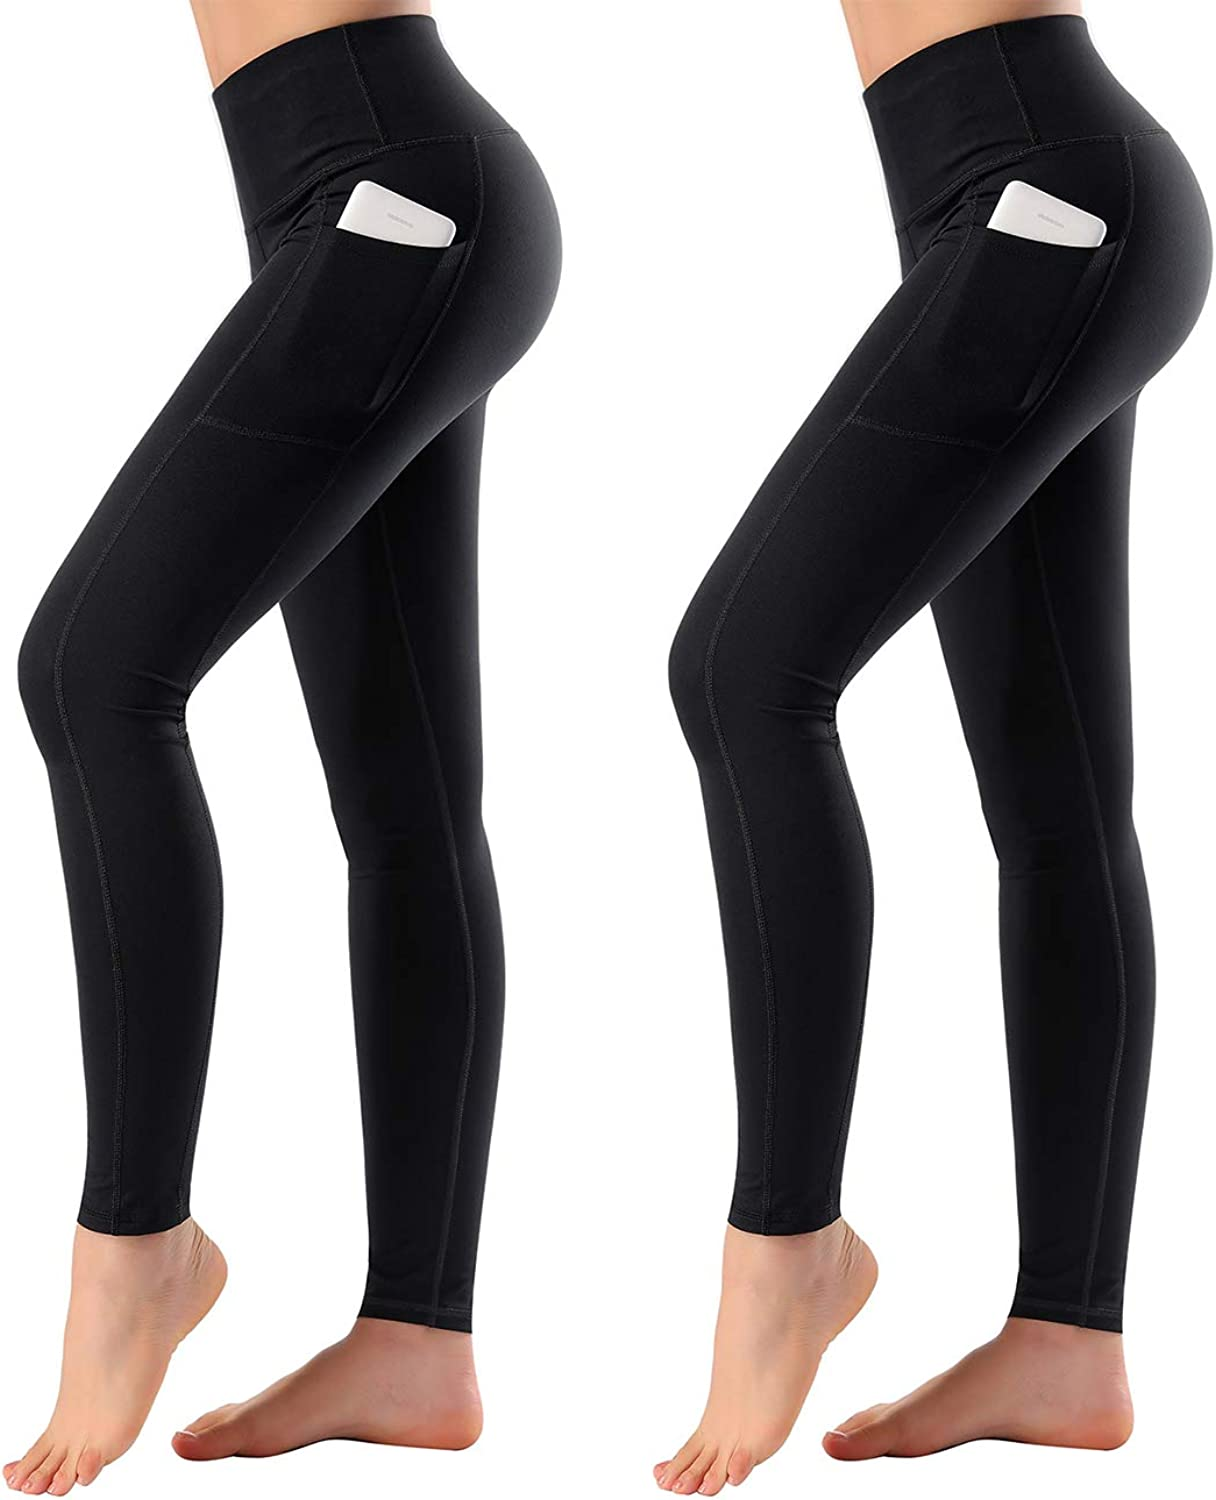 High Waist Yoga Pants with Side Pockets & Inner Pocket Sports Leggings Two Packs